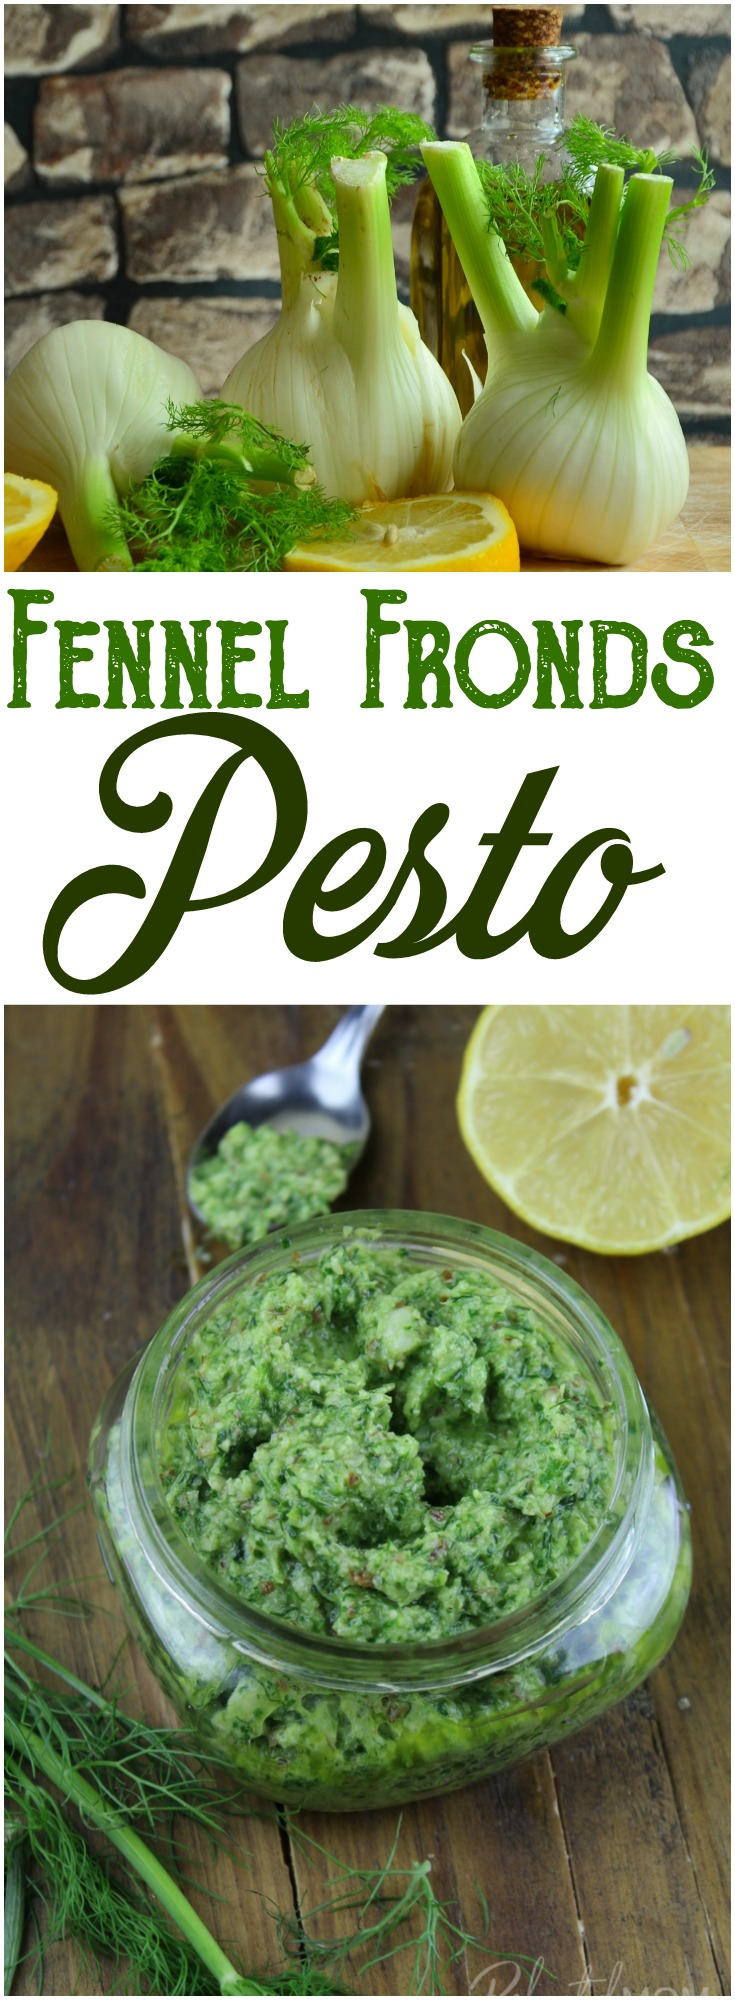 Fennel Fronds Pesto: Combine a few cups of fennel fronds with simple ingredients to make a delicious, freezer friendly fennel fronds pesto.   #fennel #fennelfronds #pesto #cleaneating #healthyrecipes